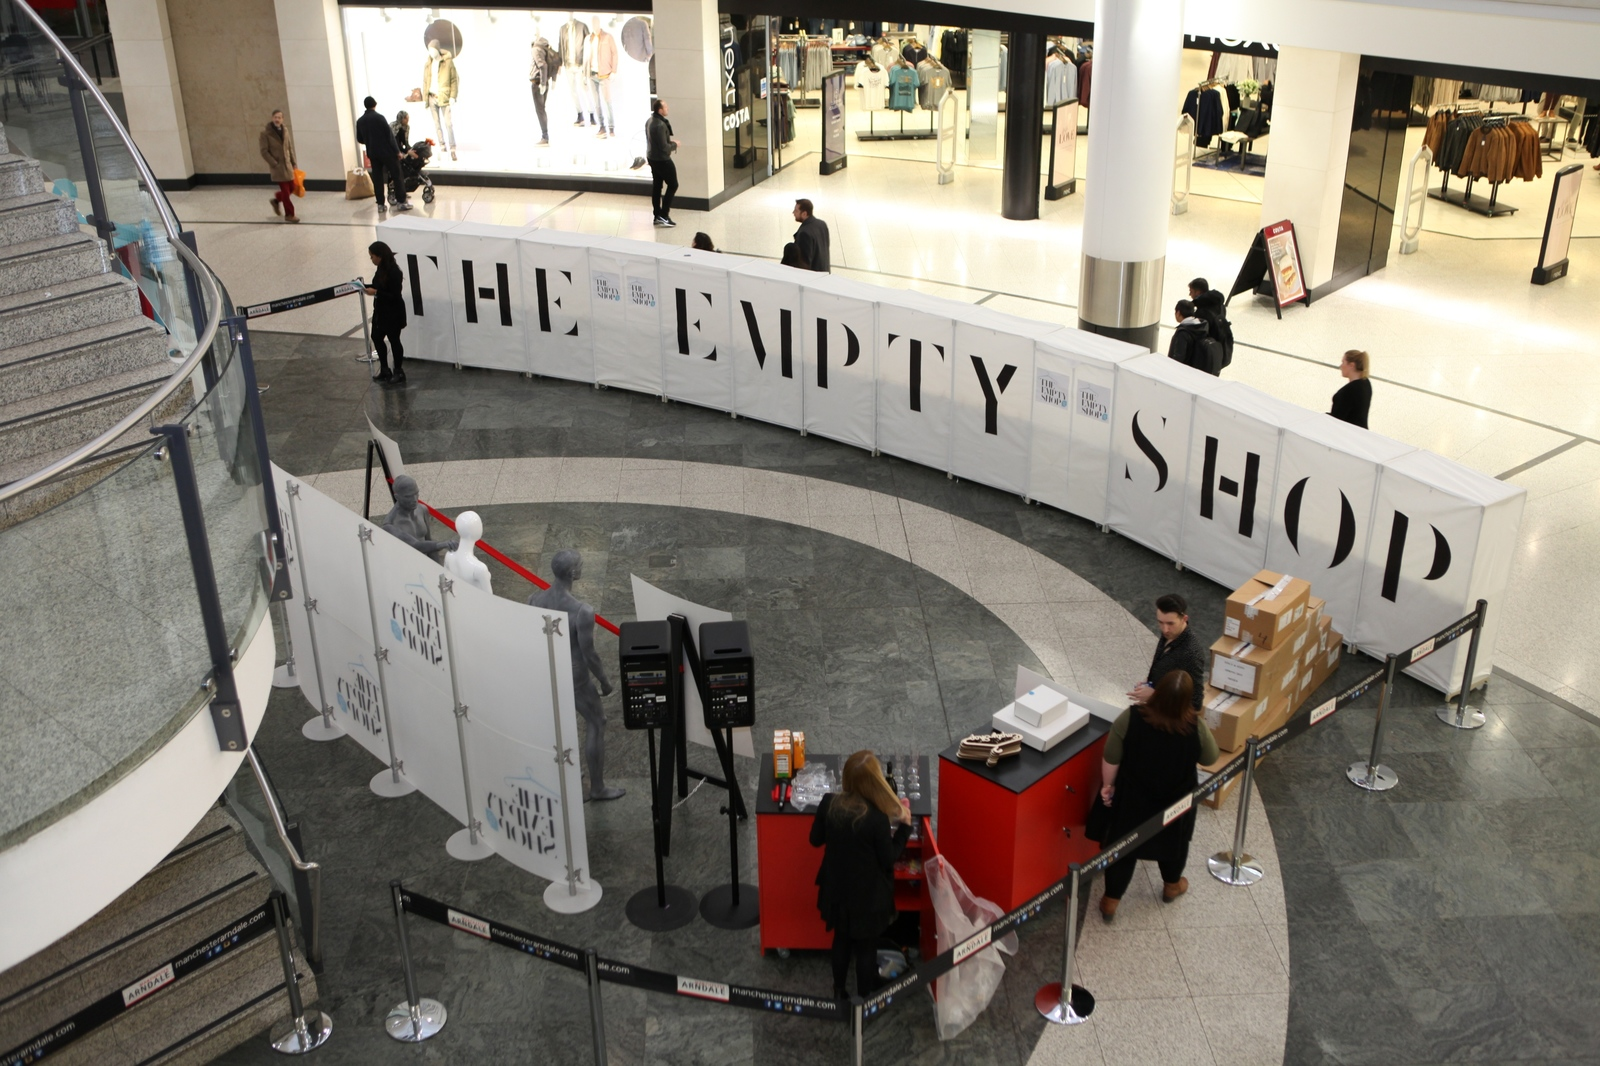 The Empty Shop 2016 at Manchester Arndale